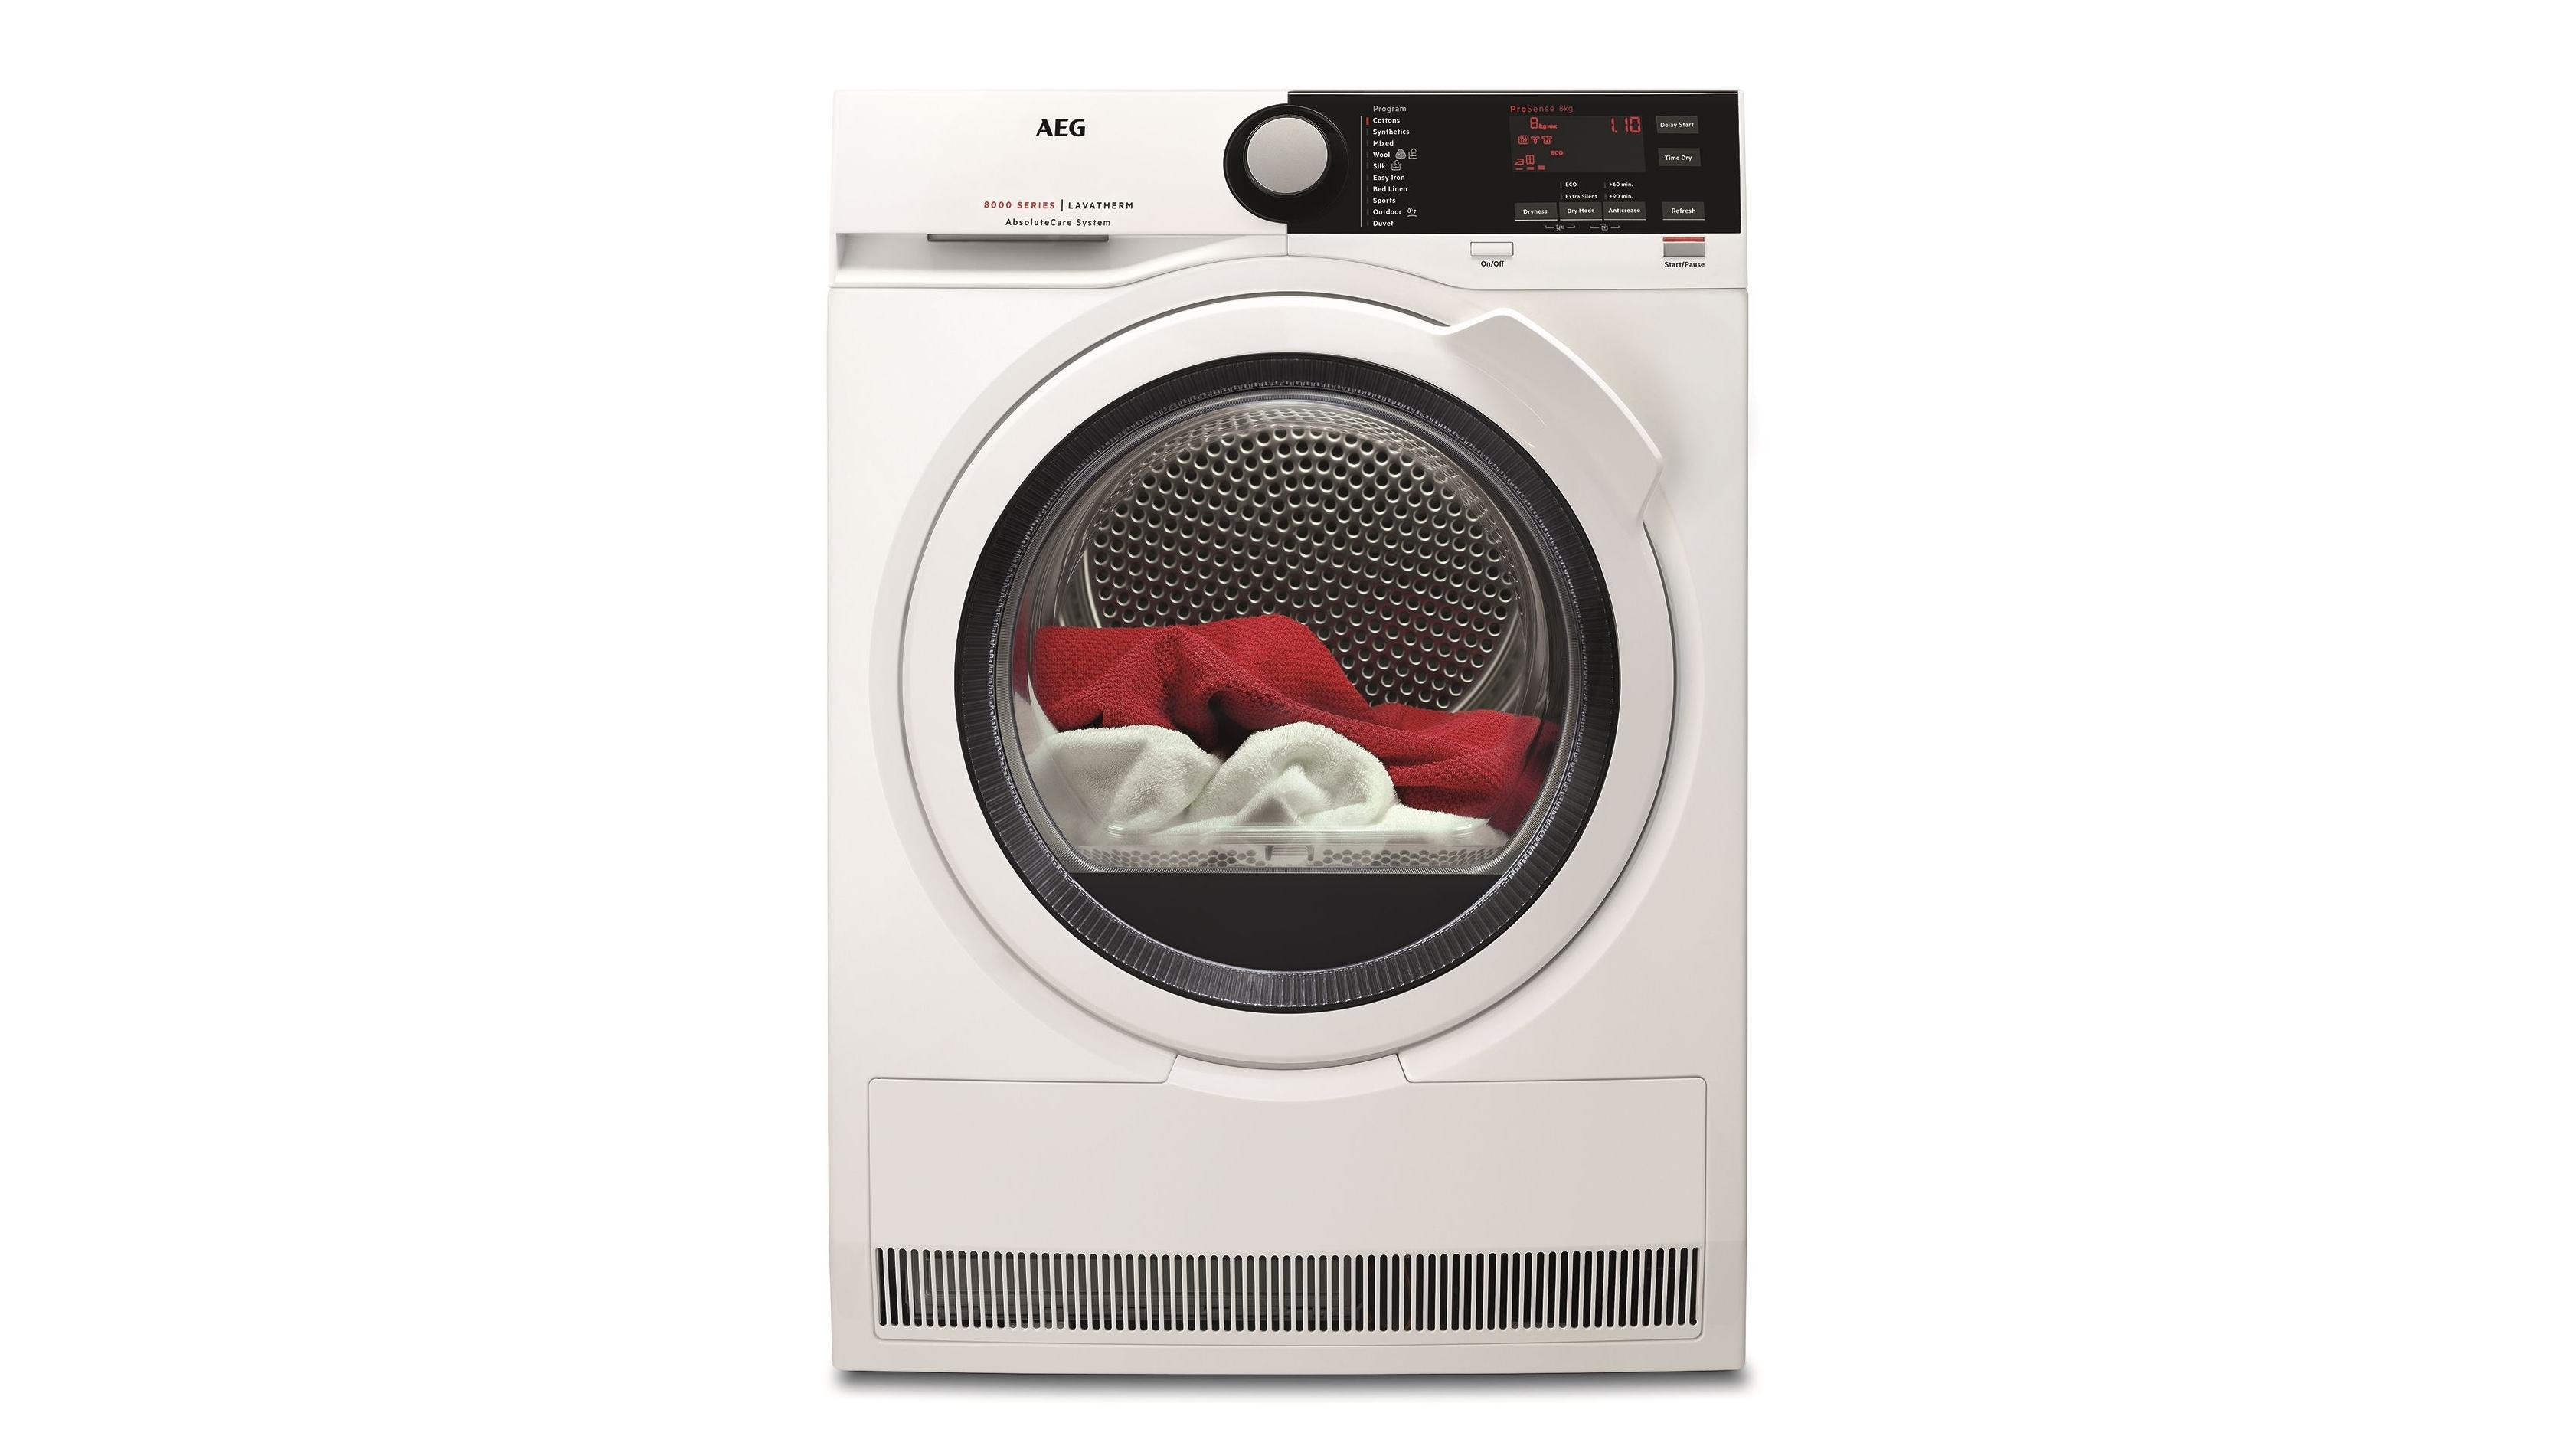 Aeg Online Shop Aeg 8kg Heat Pump Dryer With Absolutecare System